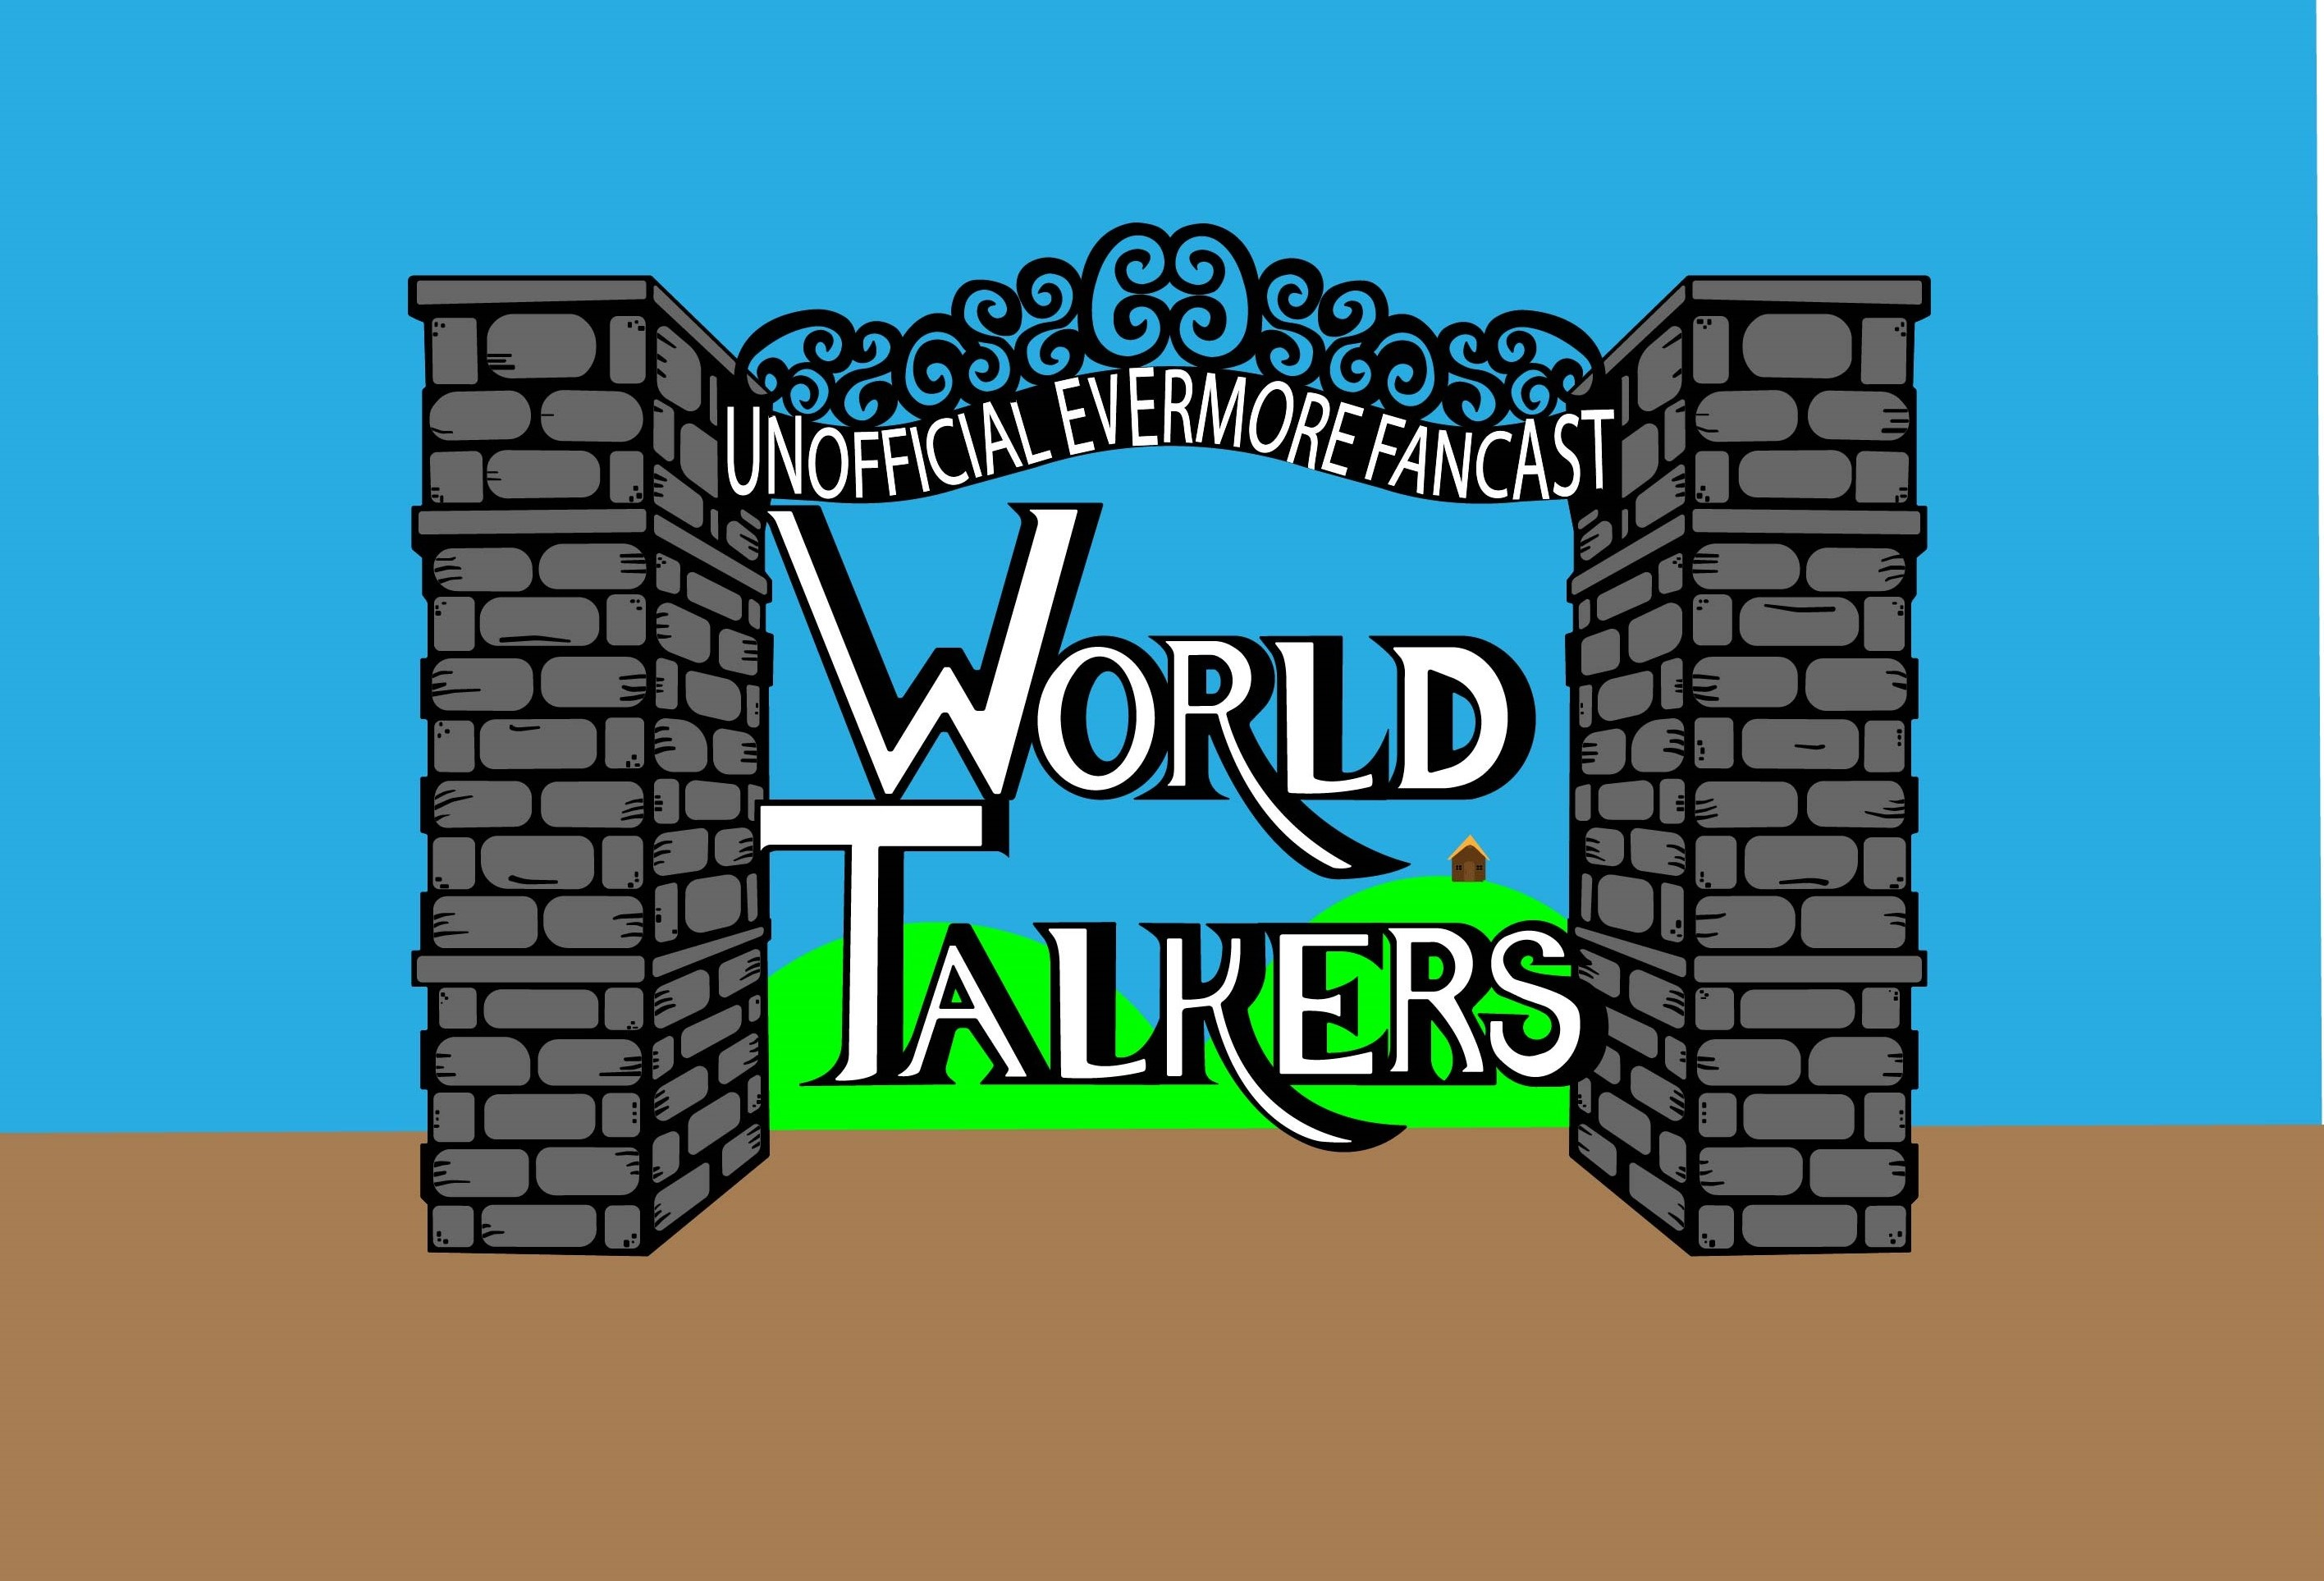 World Talkers: An Unofficial Evermore Fancast